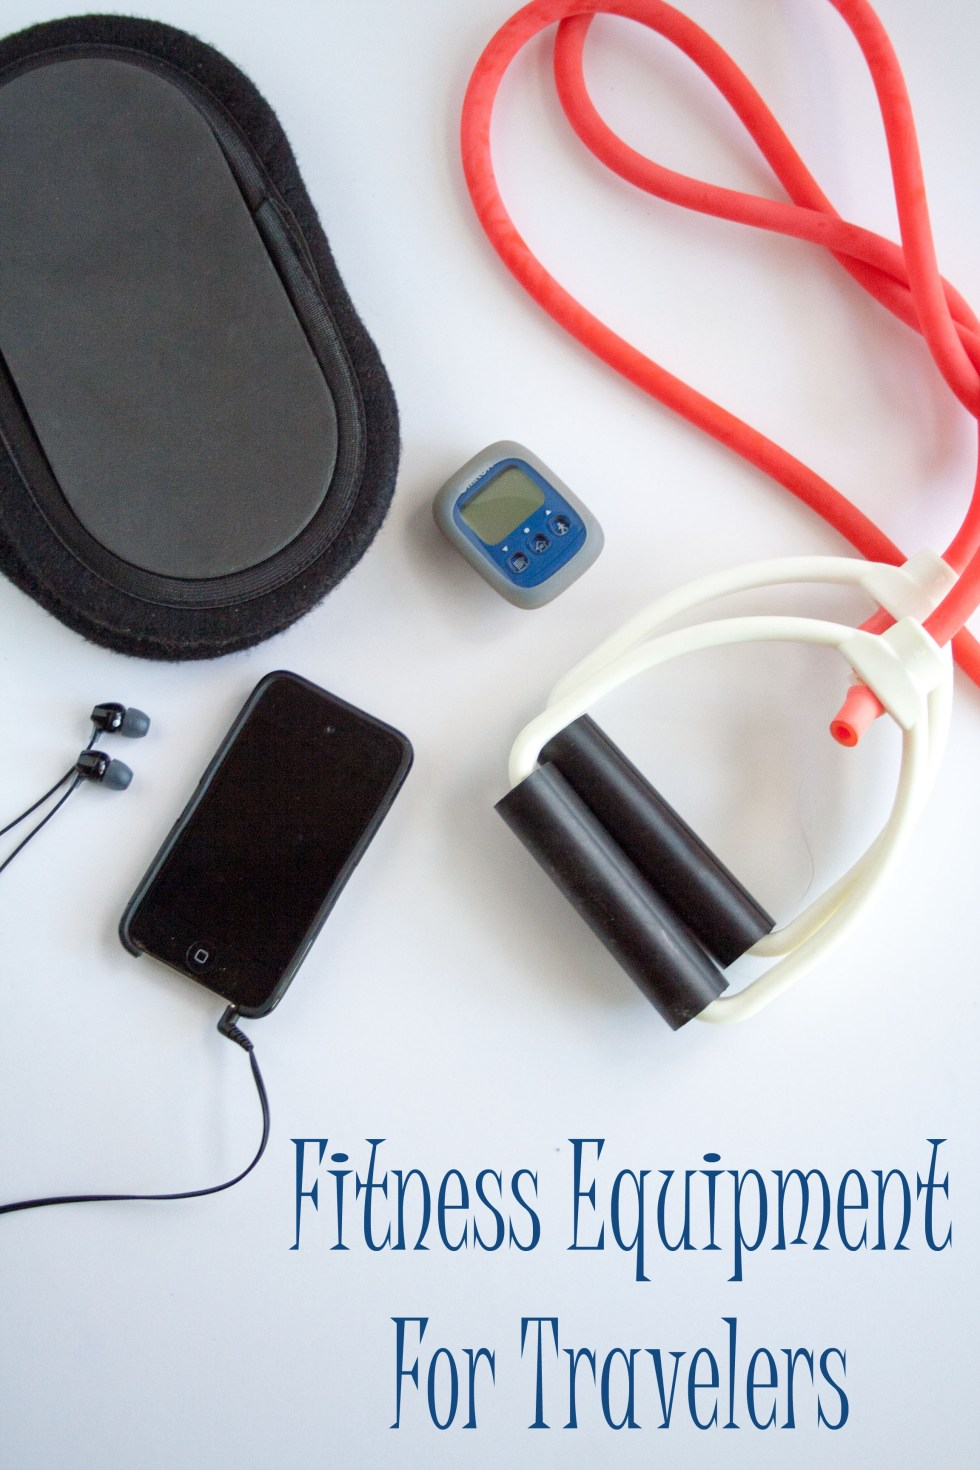 Fitness Equipment For Travelers - When it comes to working out while traveling, I stick with the lightest essentials.